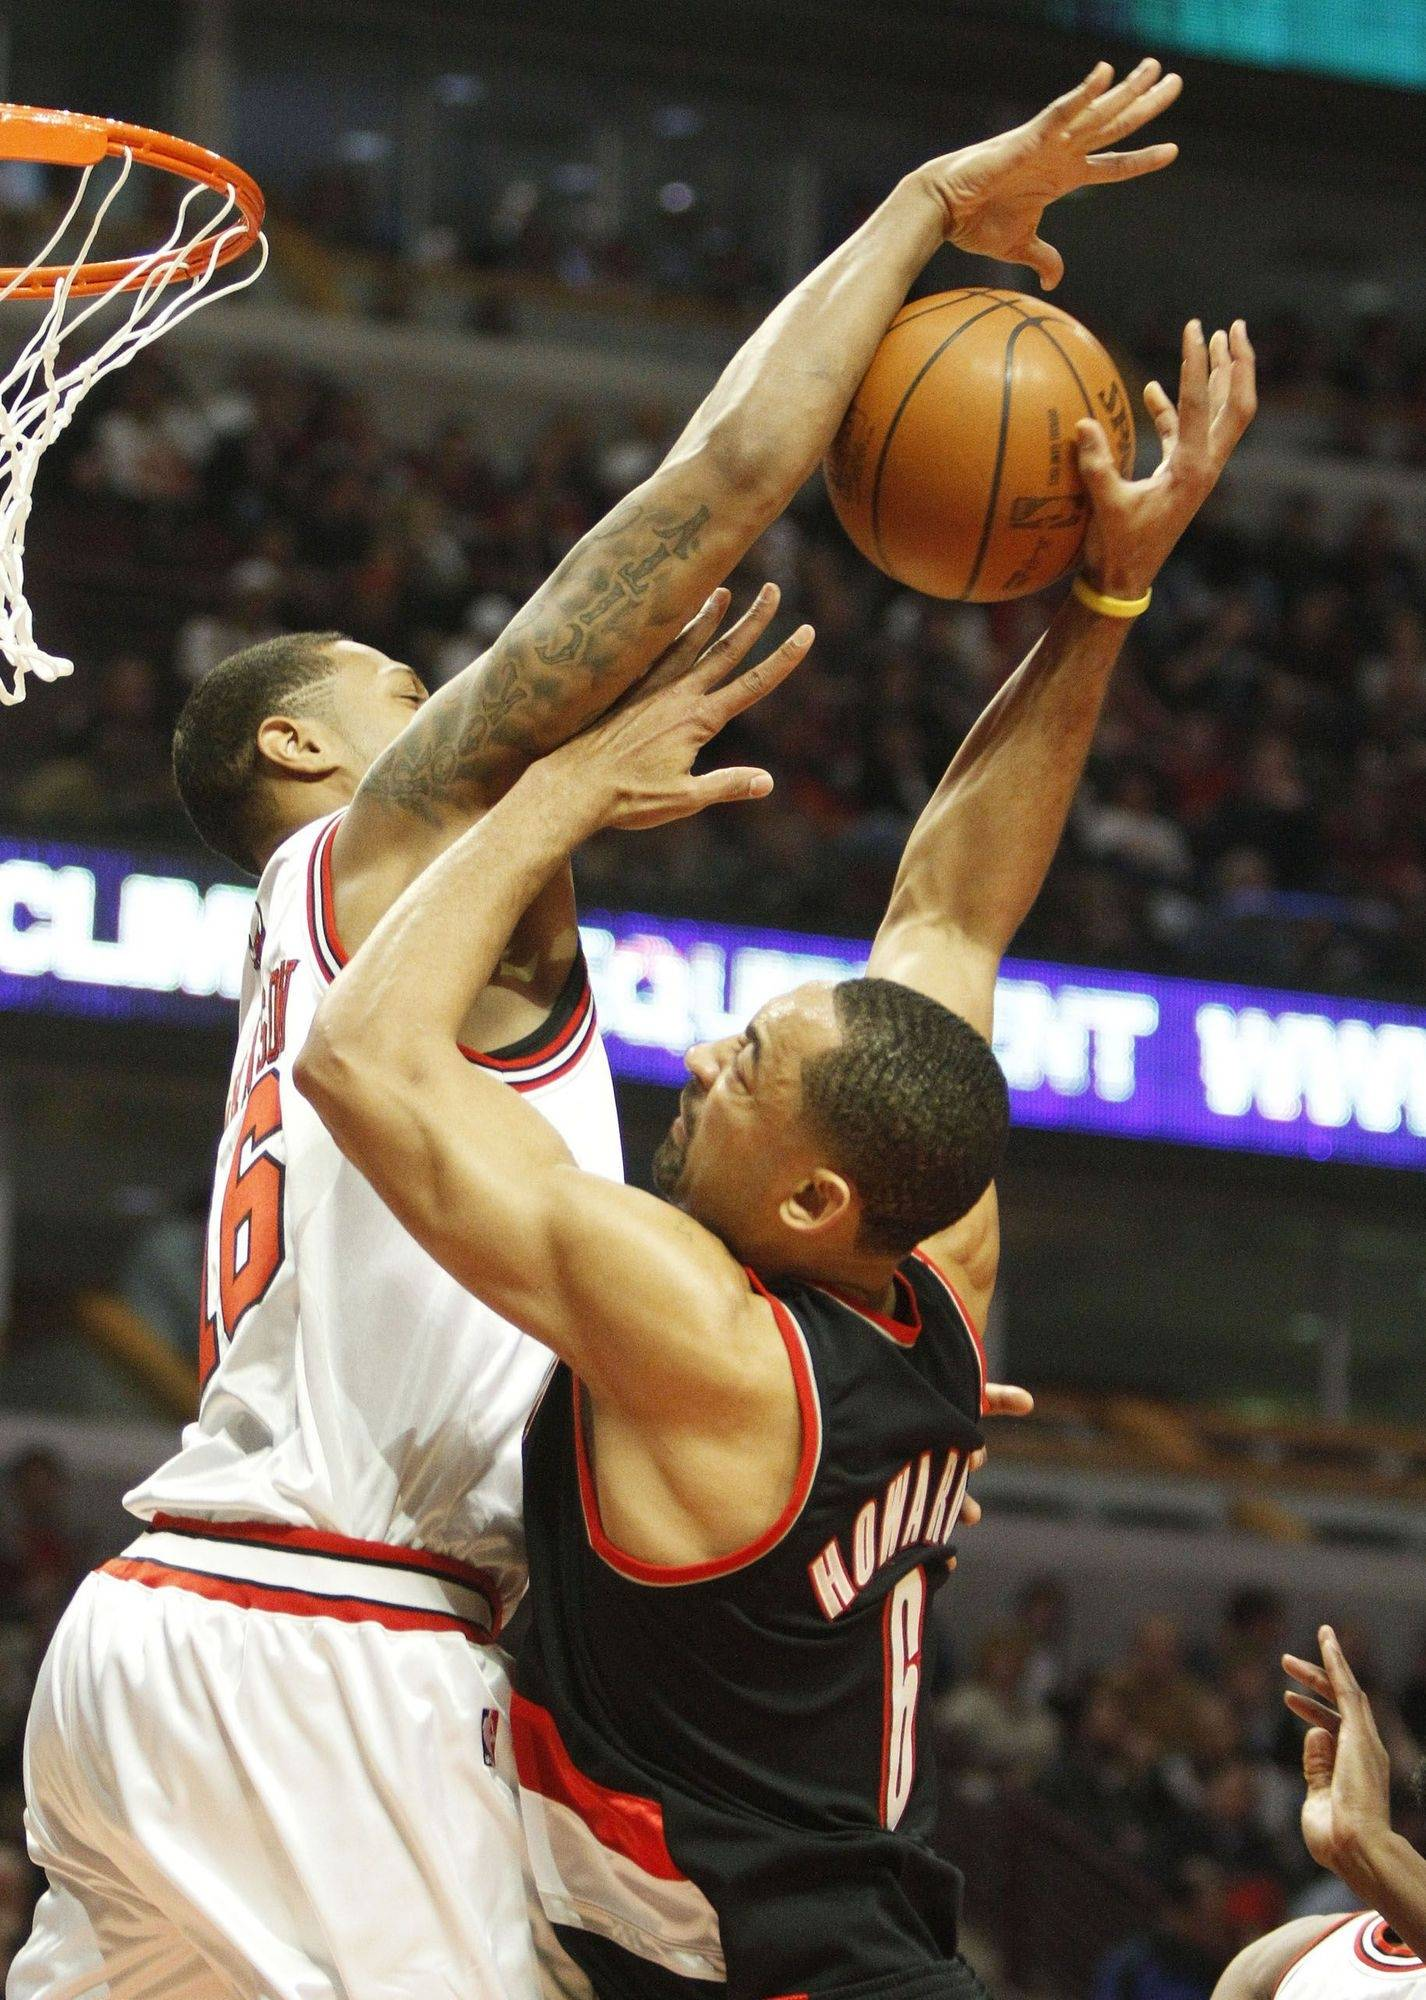 James Johnson of the Bulls blocks the shot of the Portland Trailblazers' Juwan Howard in Friday's game. Johnson and new Bull Joe Alexander are battling for playing time.